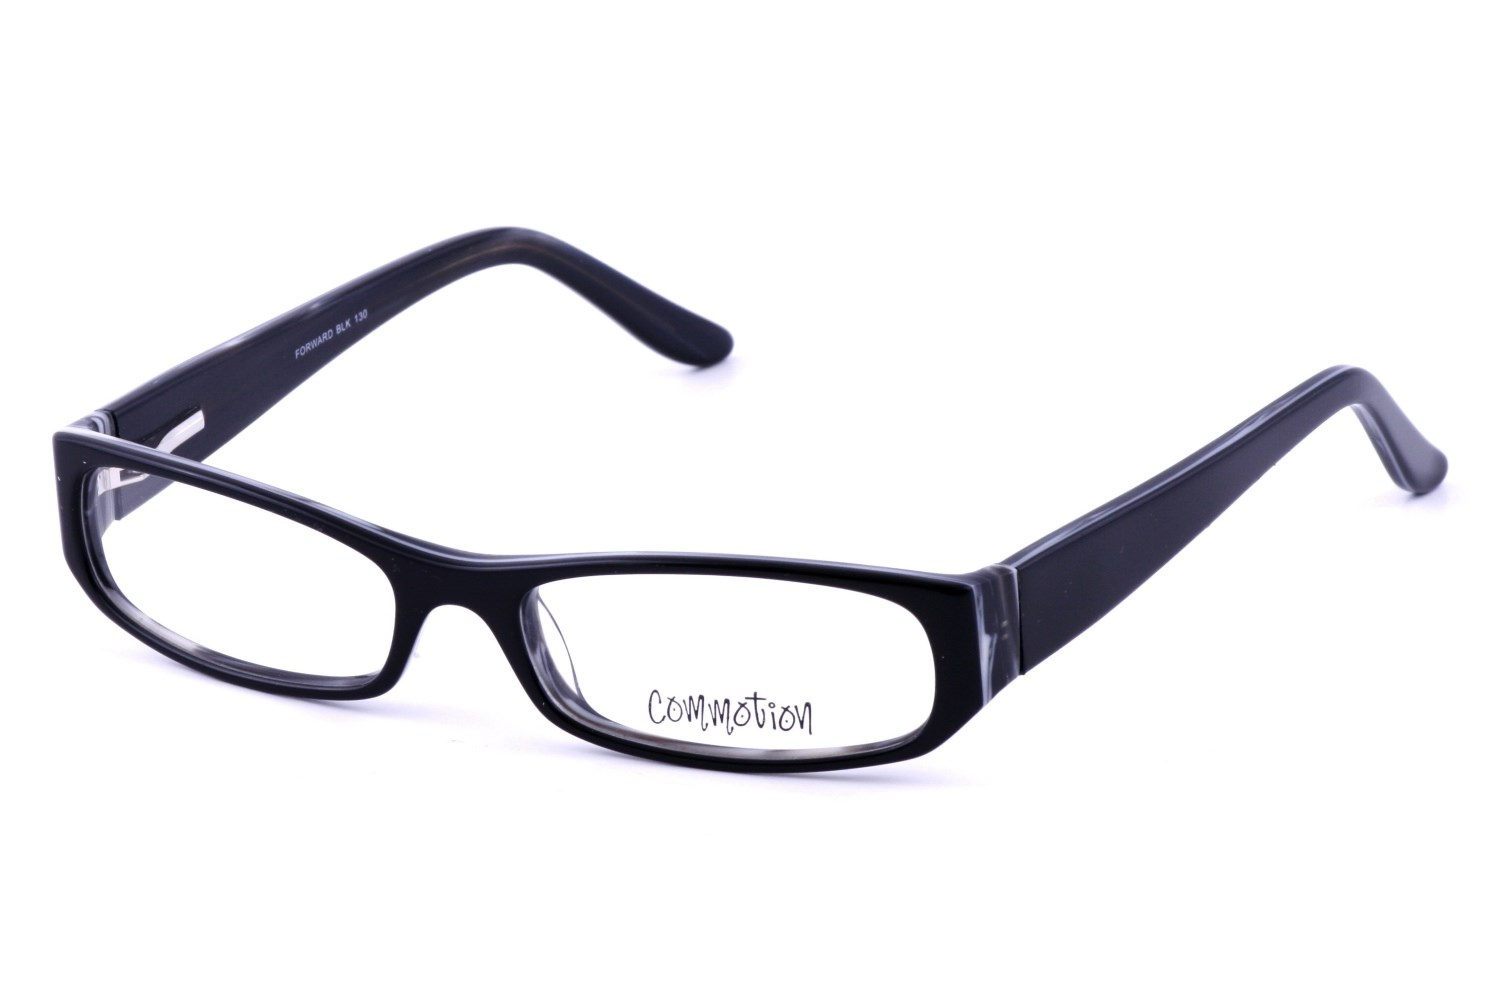 Commotion Forward Prescription Eyeglasses Frames